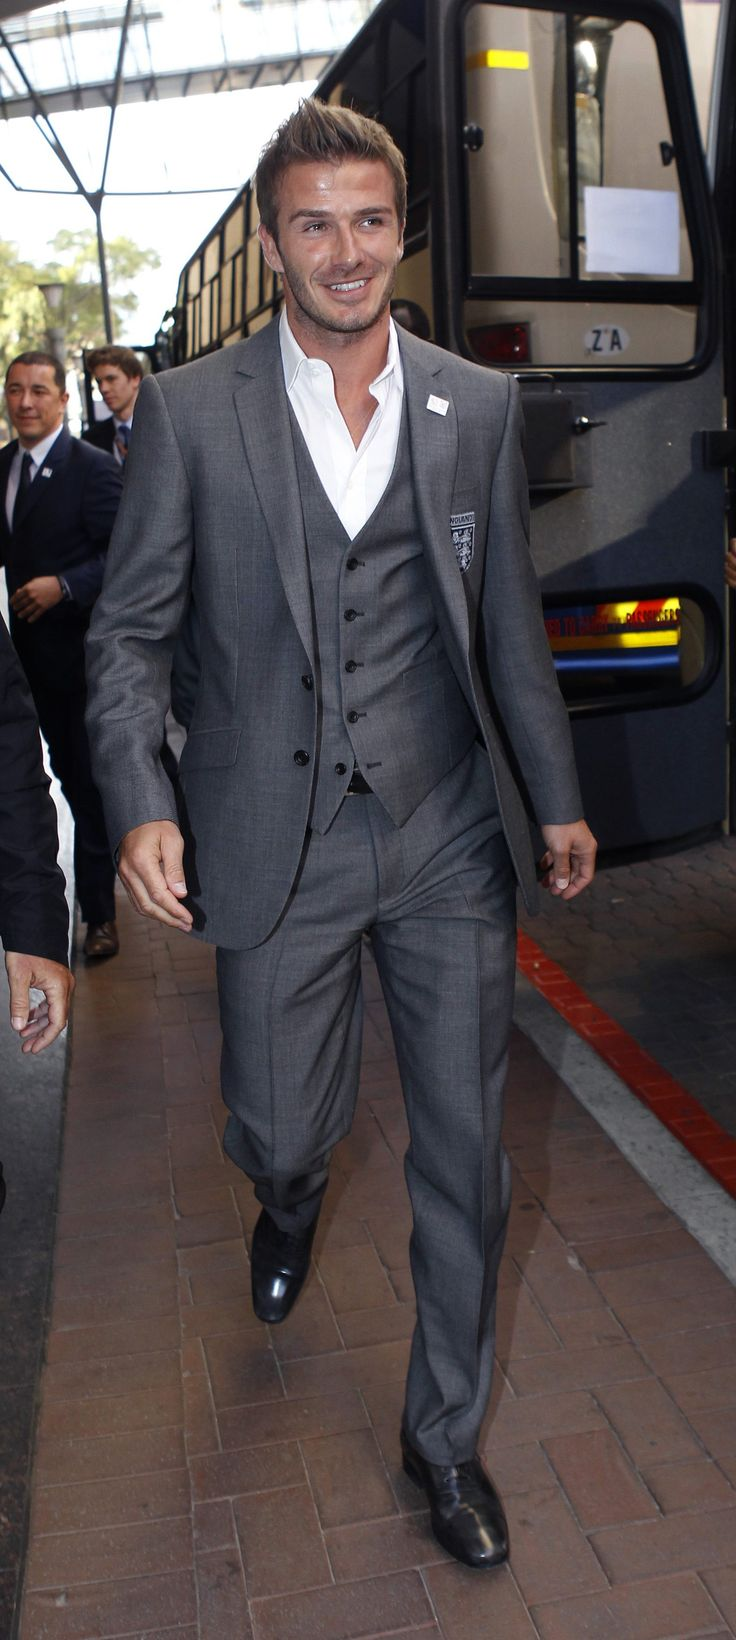 Pictures-David-Beckham-Suit-Field-England-Soccer-Team